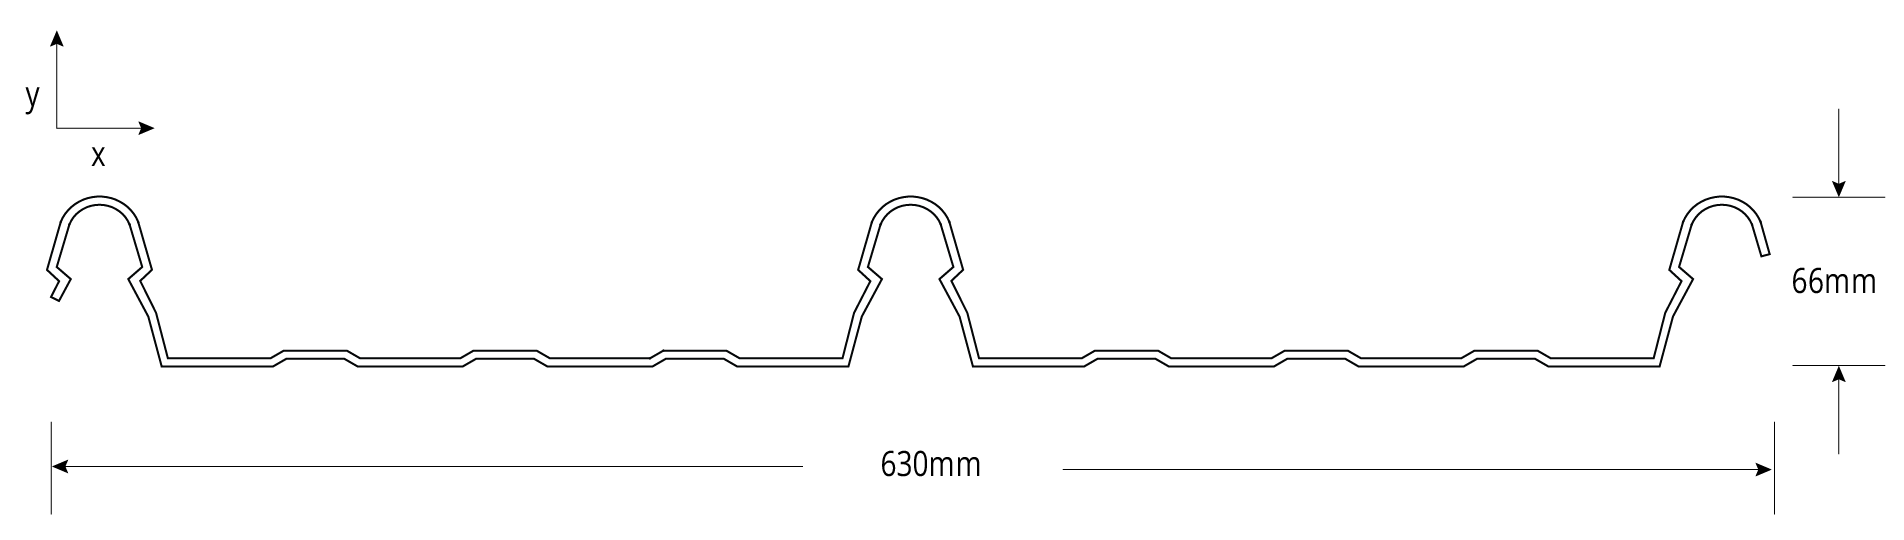 HIKLIP<sup class='fm-sup'>®</sup> 630 CYCLONIC Profile Cross Section